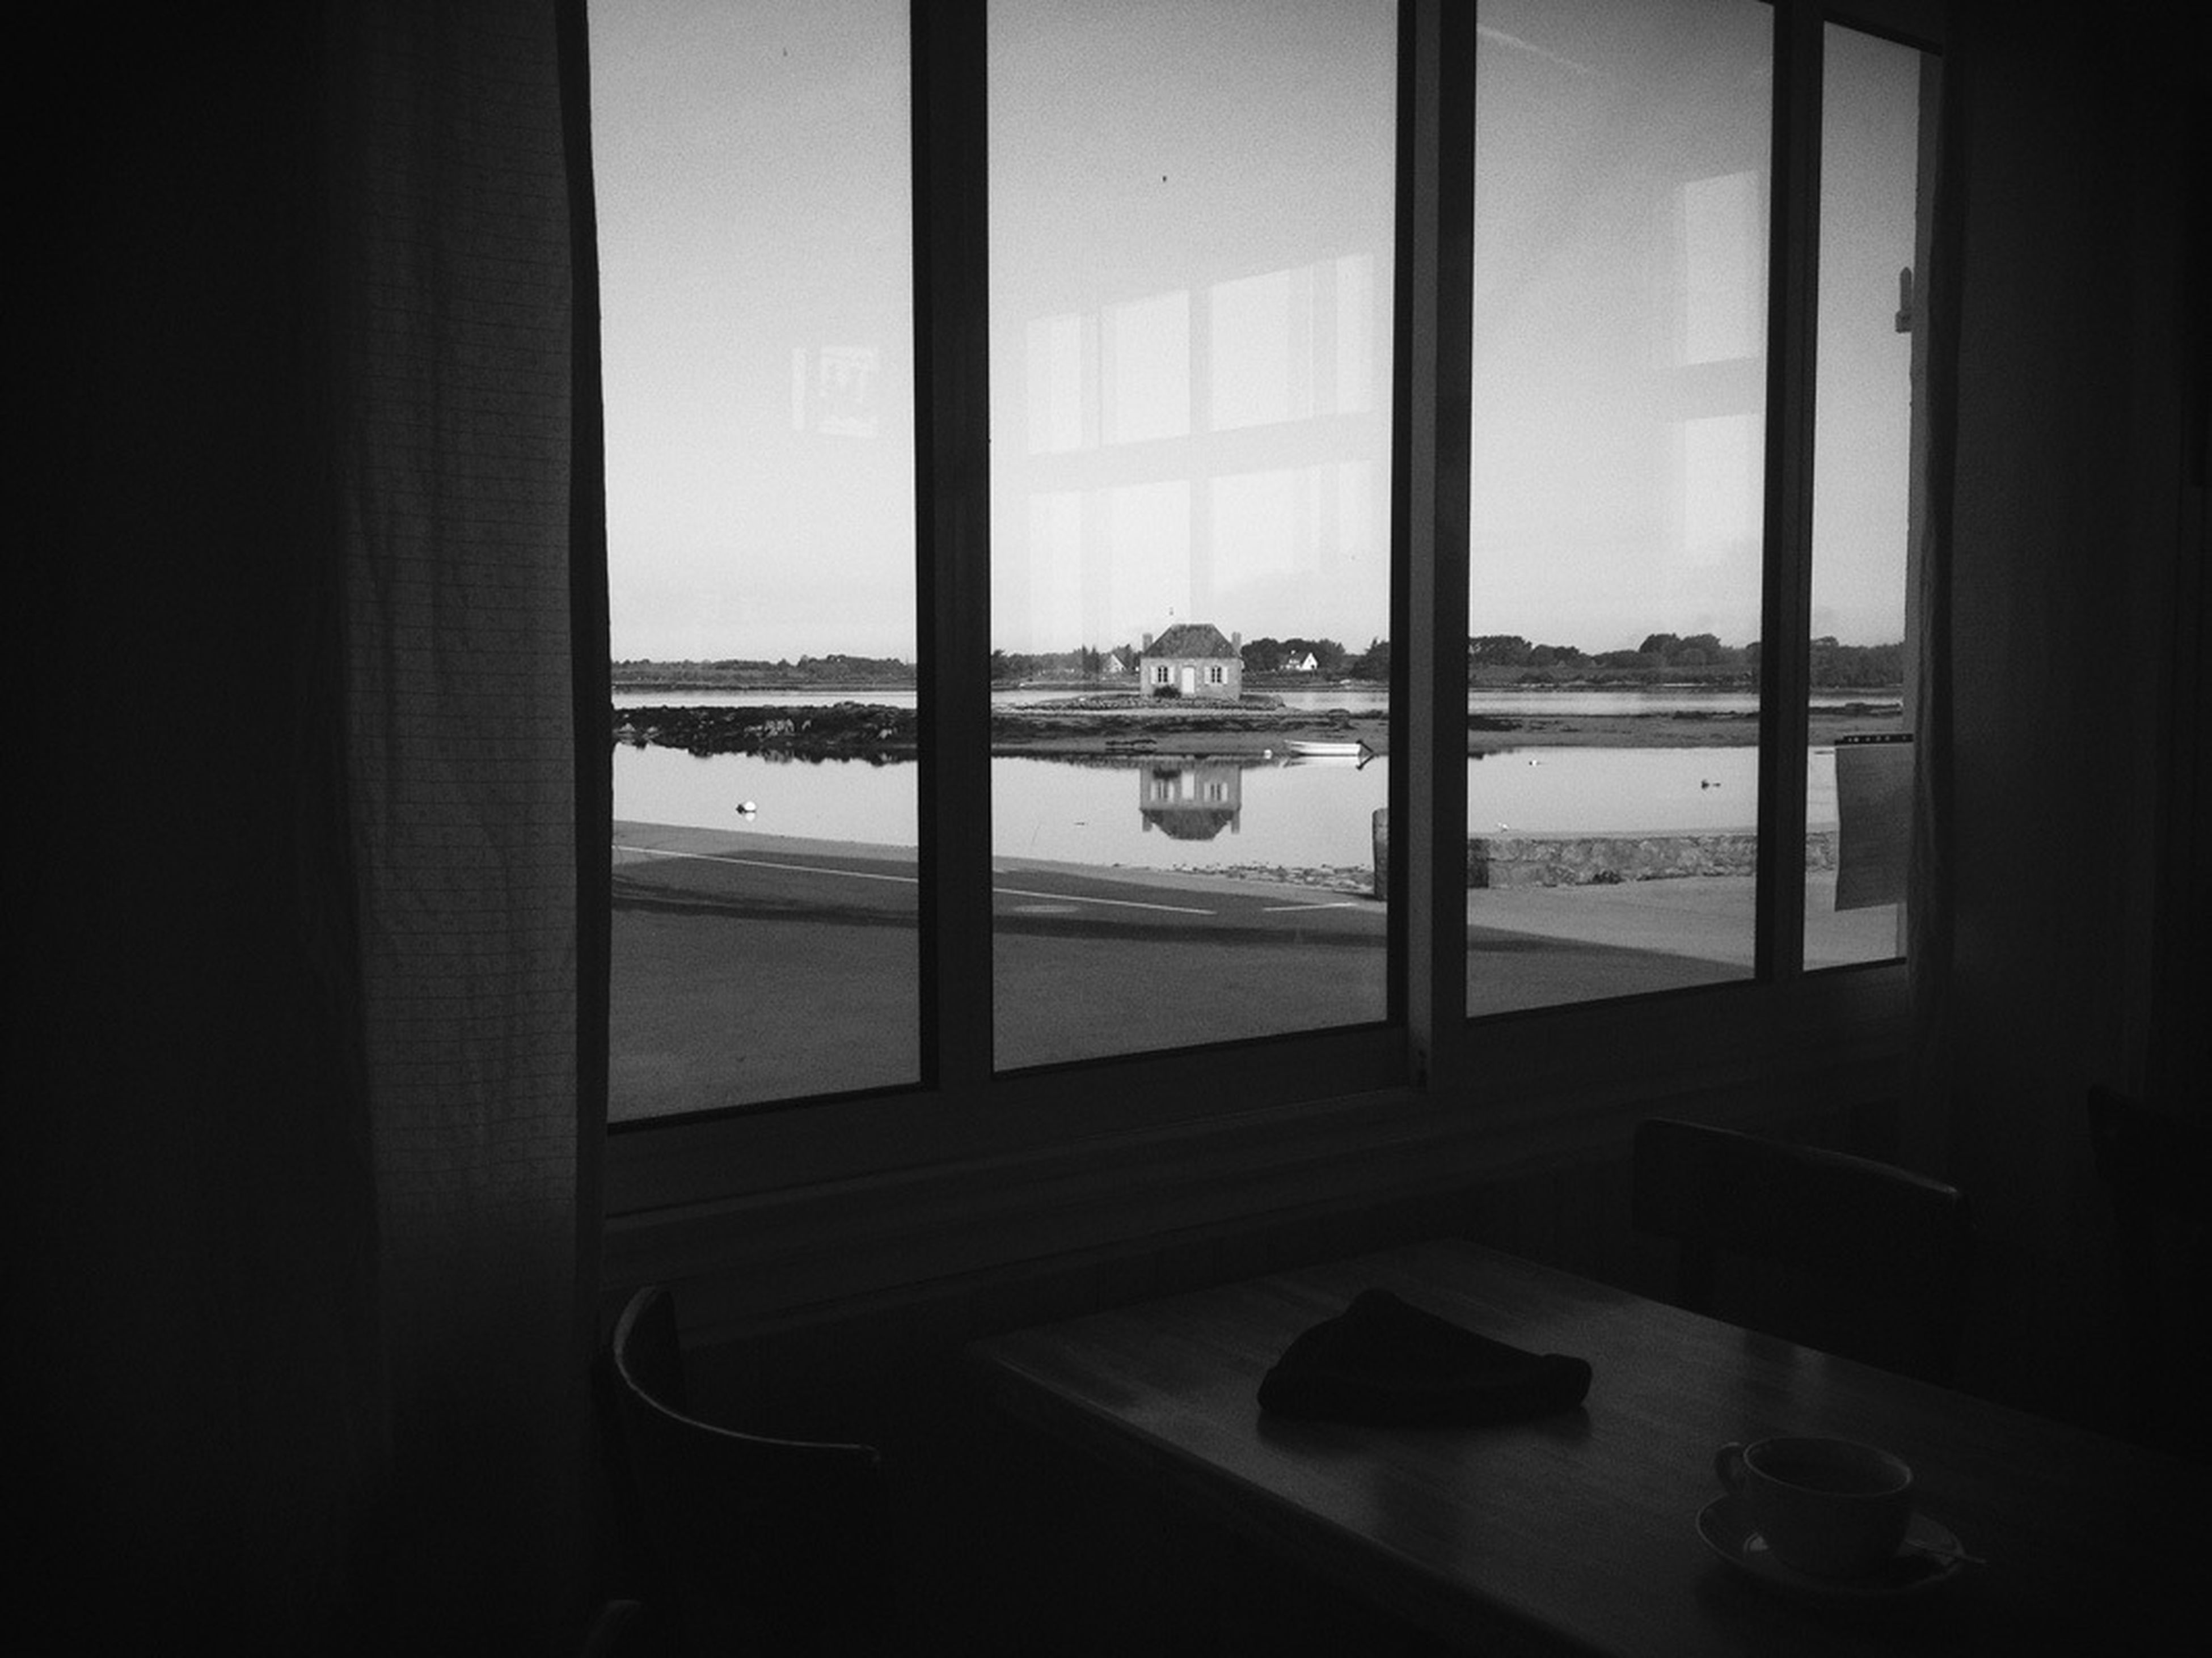 window, indoors, water, glass - material, transparent, sea, nautical vessel, mode of transport, transportation, boat, built structure, sky, architecture, looking through window, reflection, day, no people, travel, horizon over water, nature